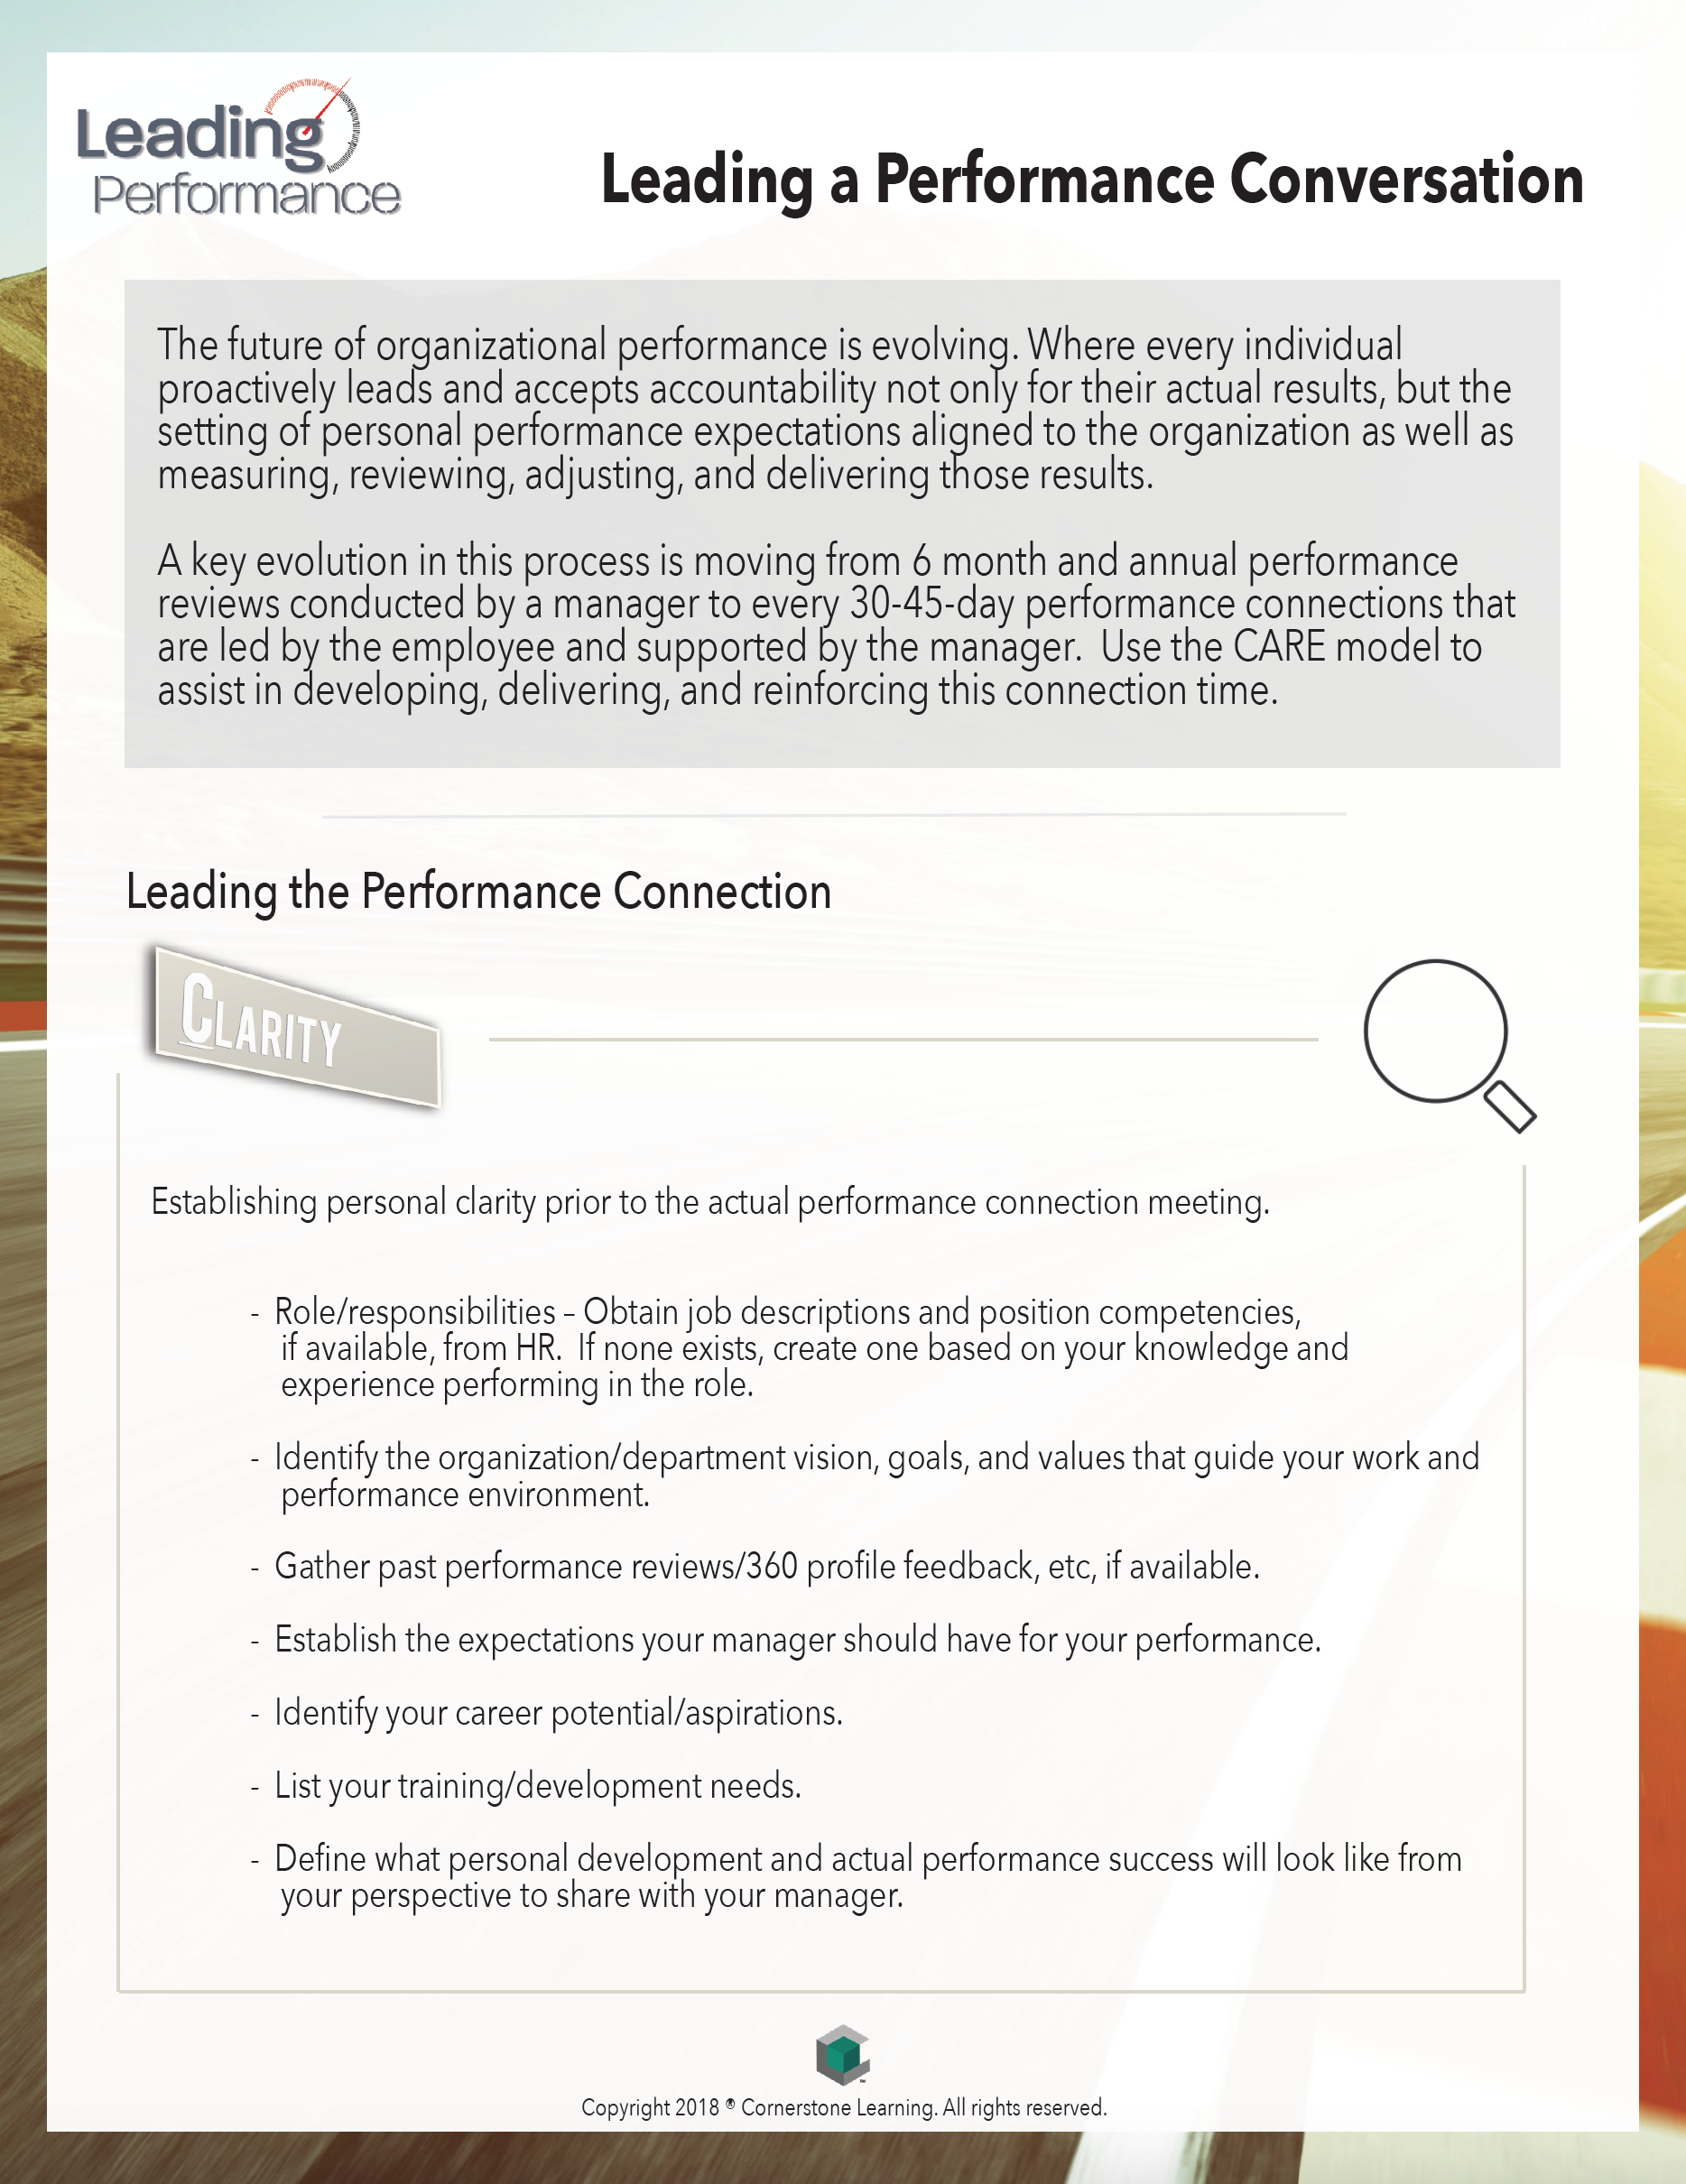 Leading a Performance Connection PDF